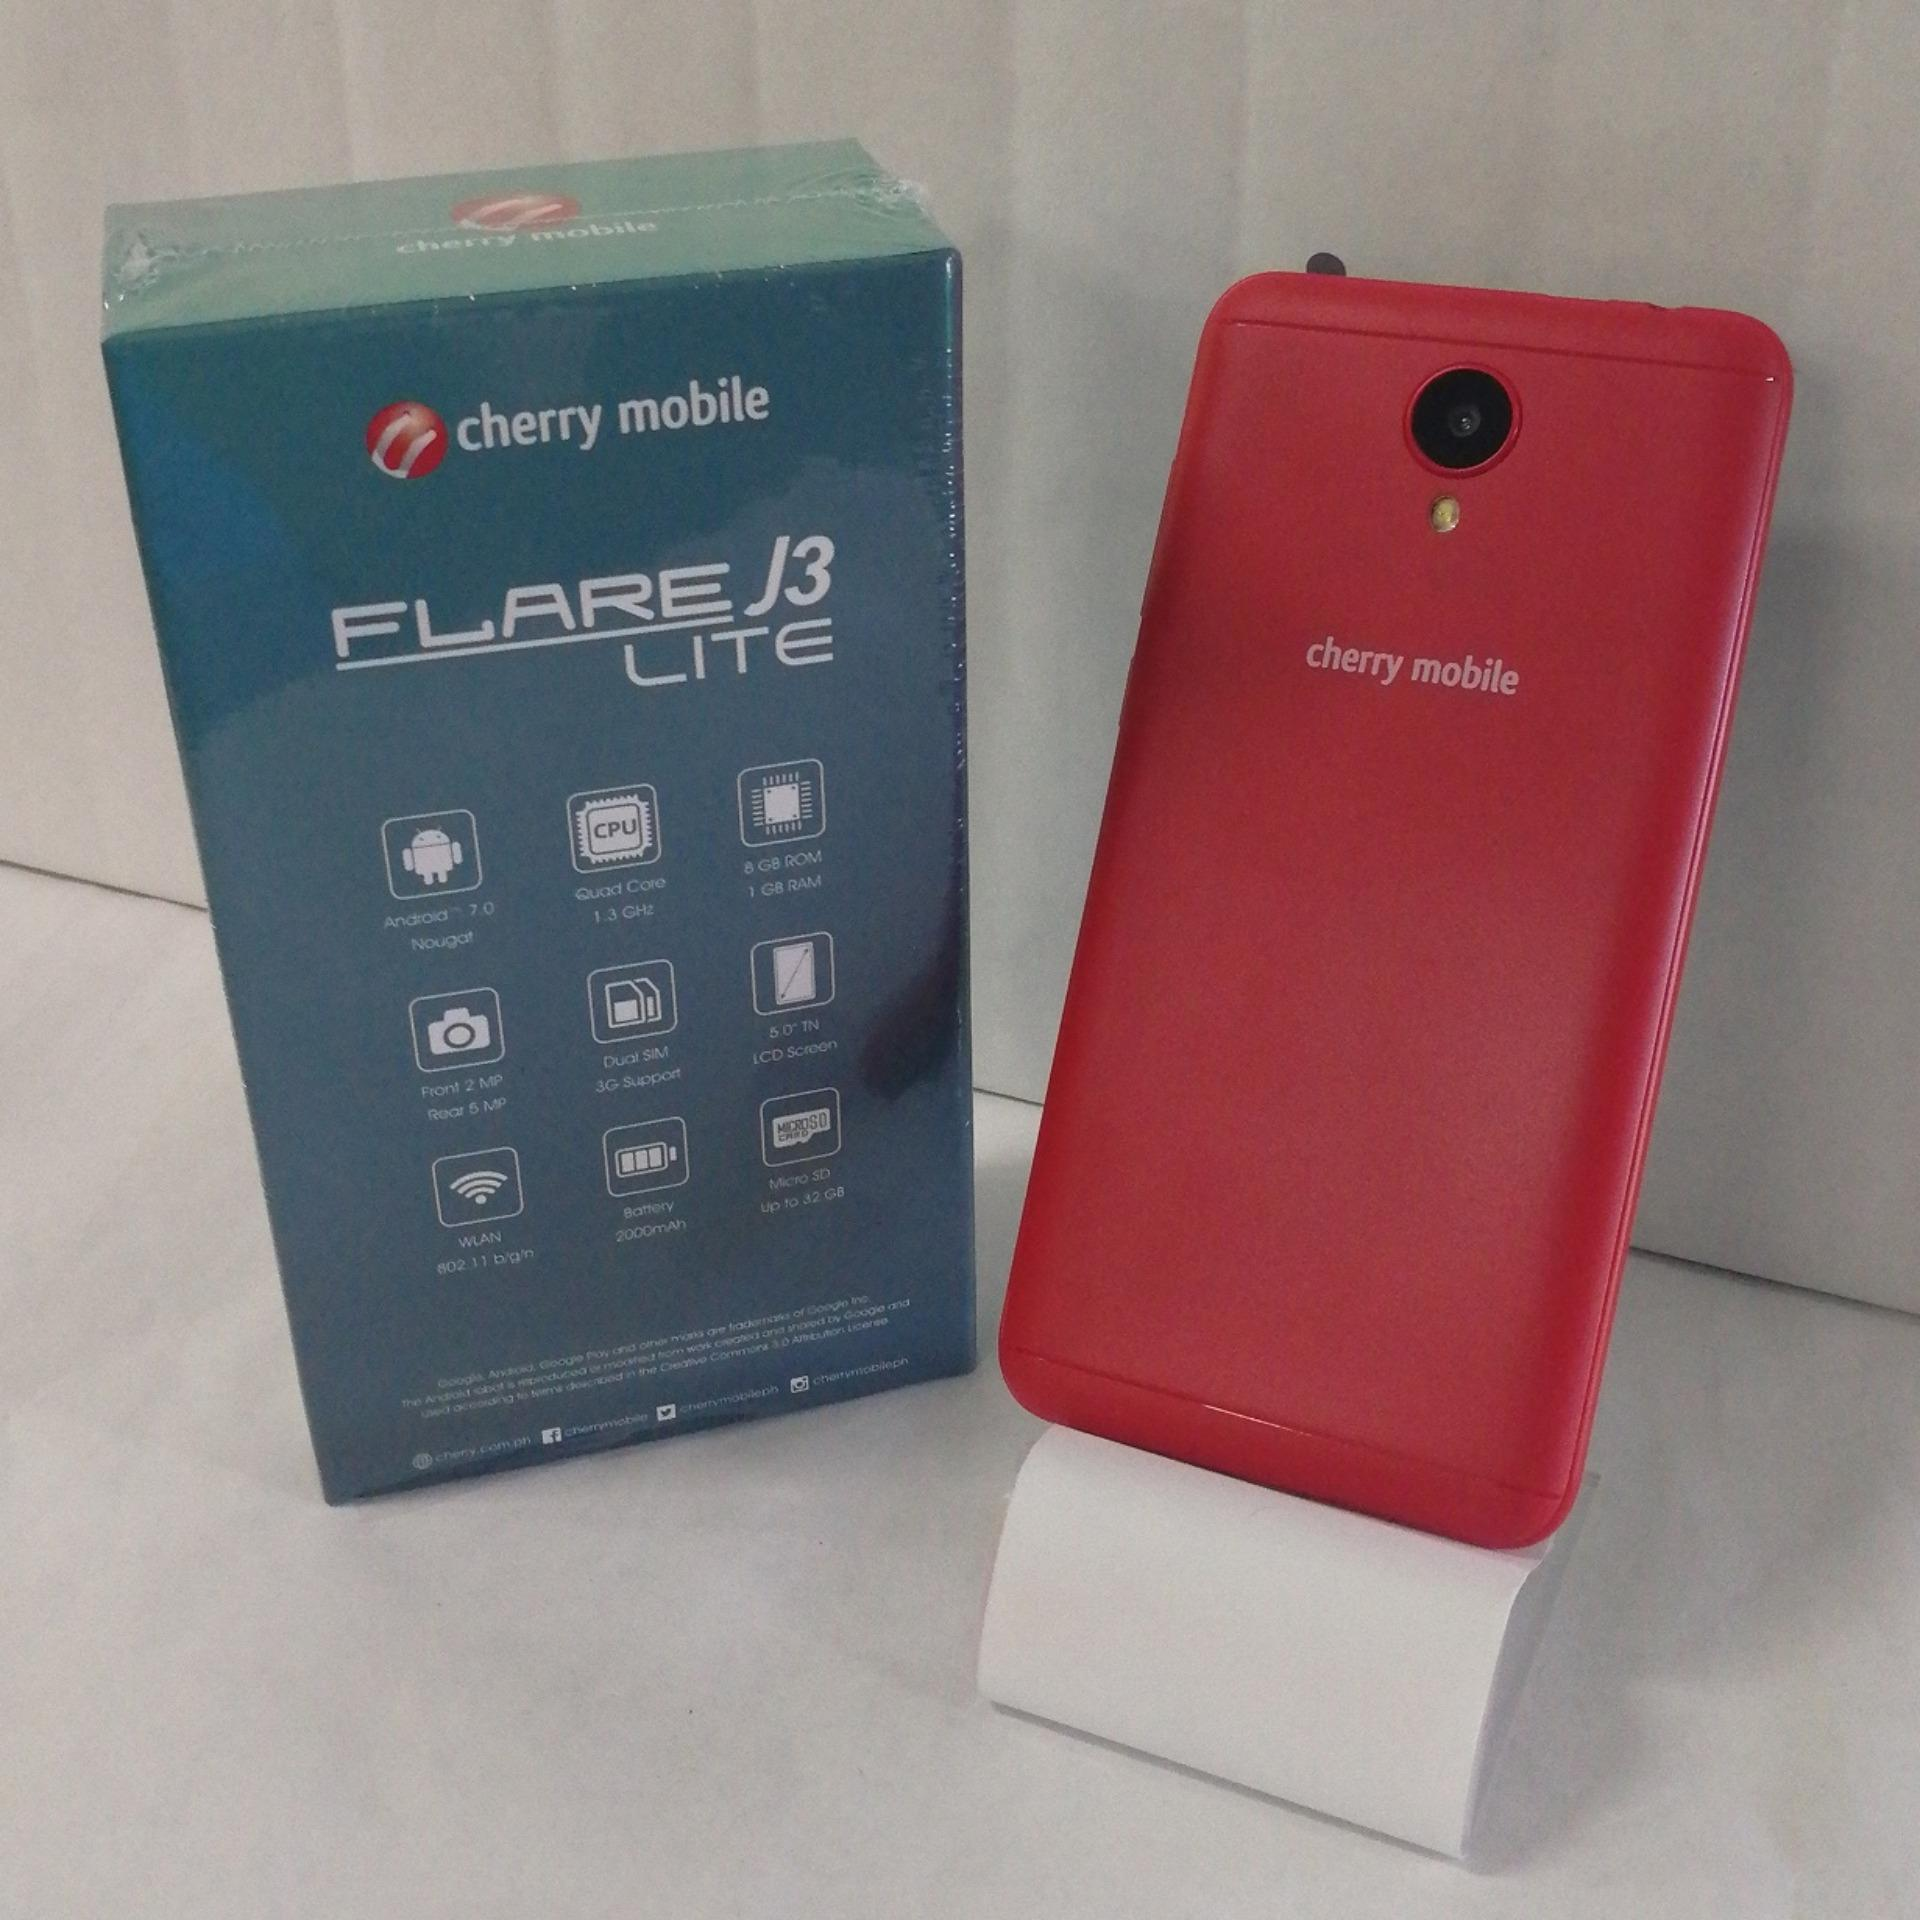 free shipping 2c315 f8bbe Promotions & Catalogs - Cherry Mobile Flare J3 Lite Battery CM-15K